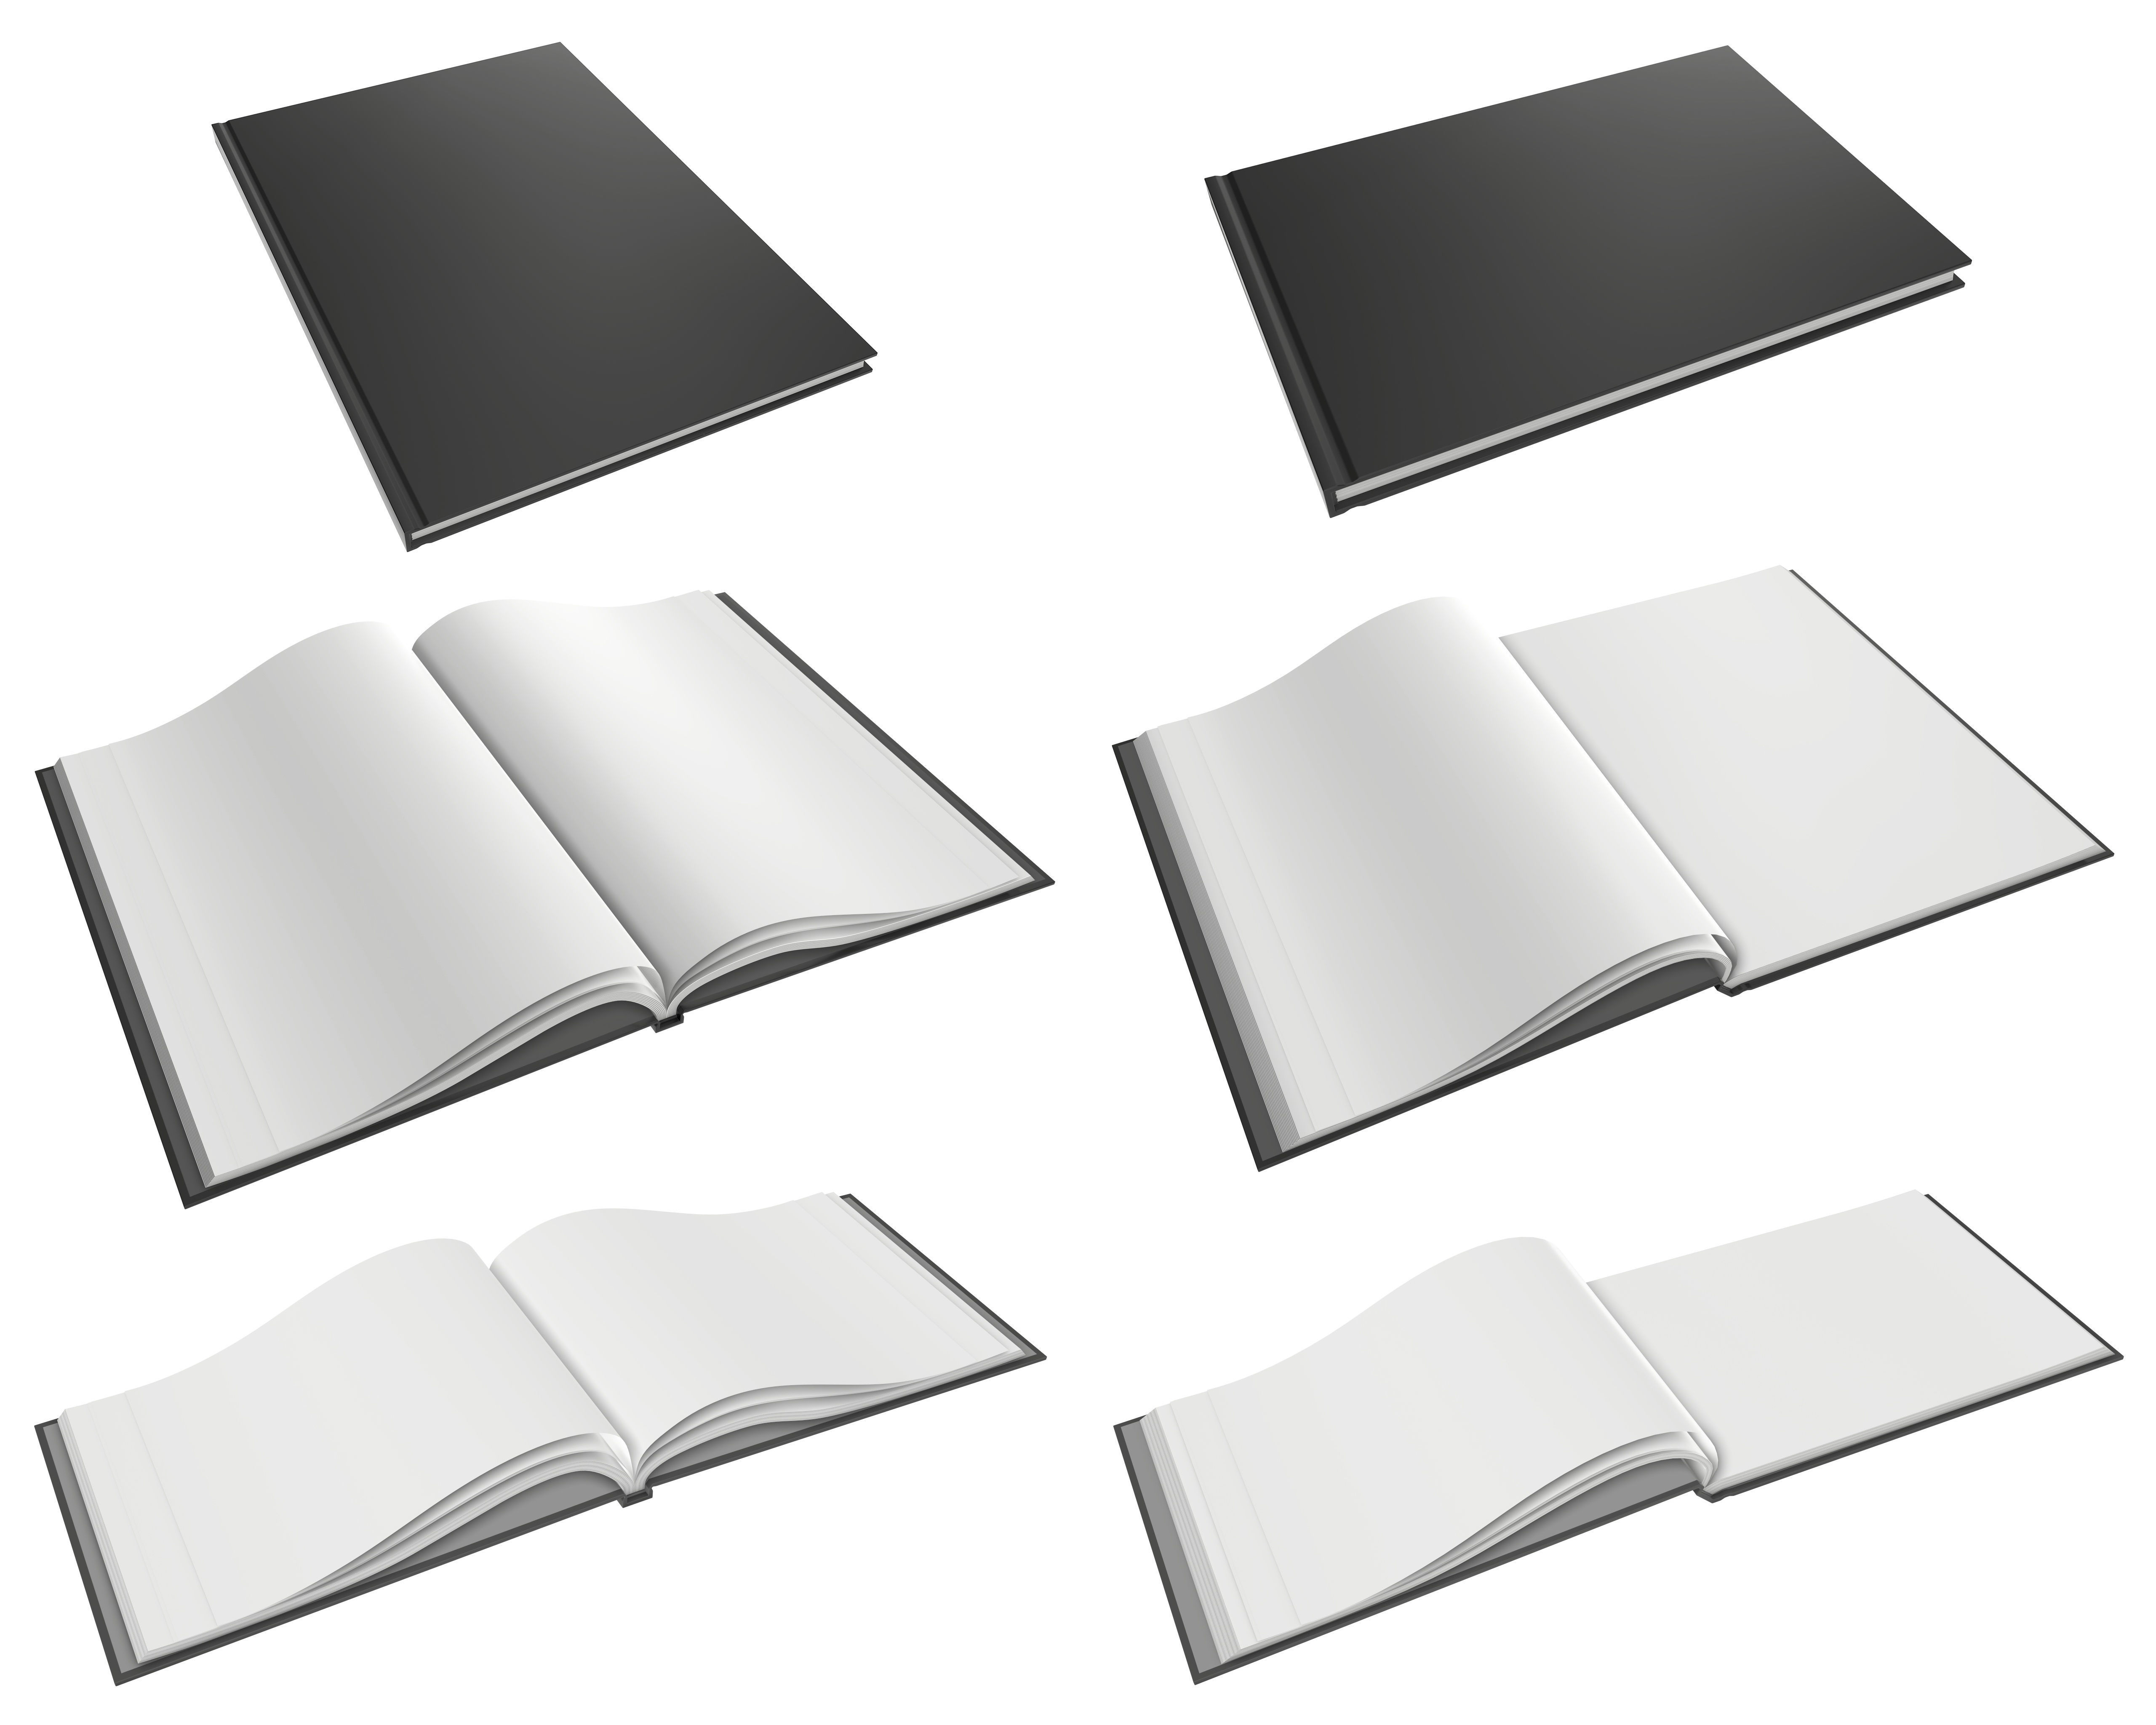 Albums A4 A5 size hardcover for mock-up